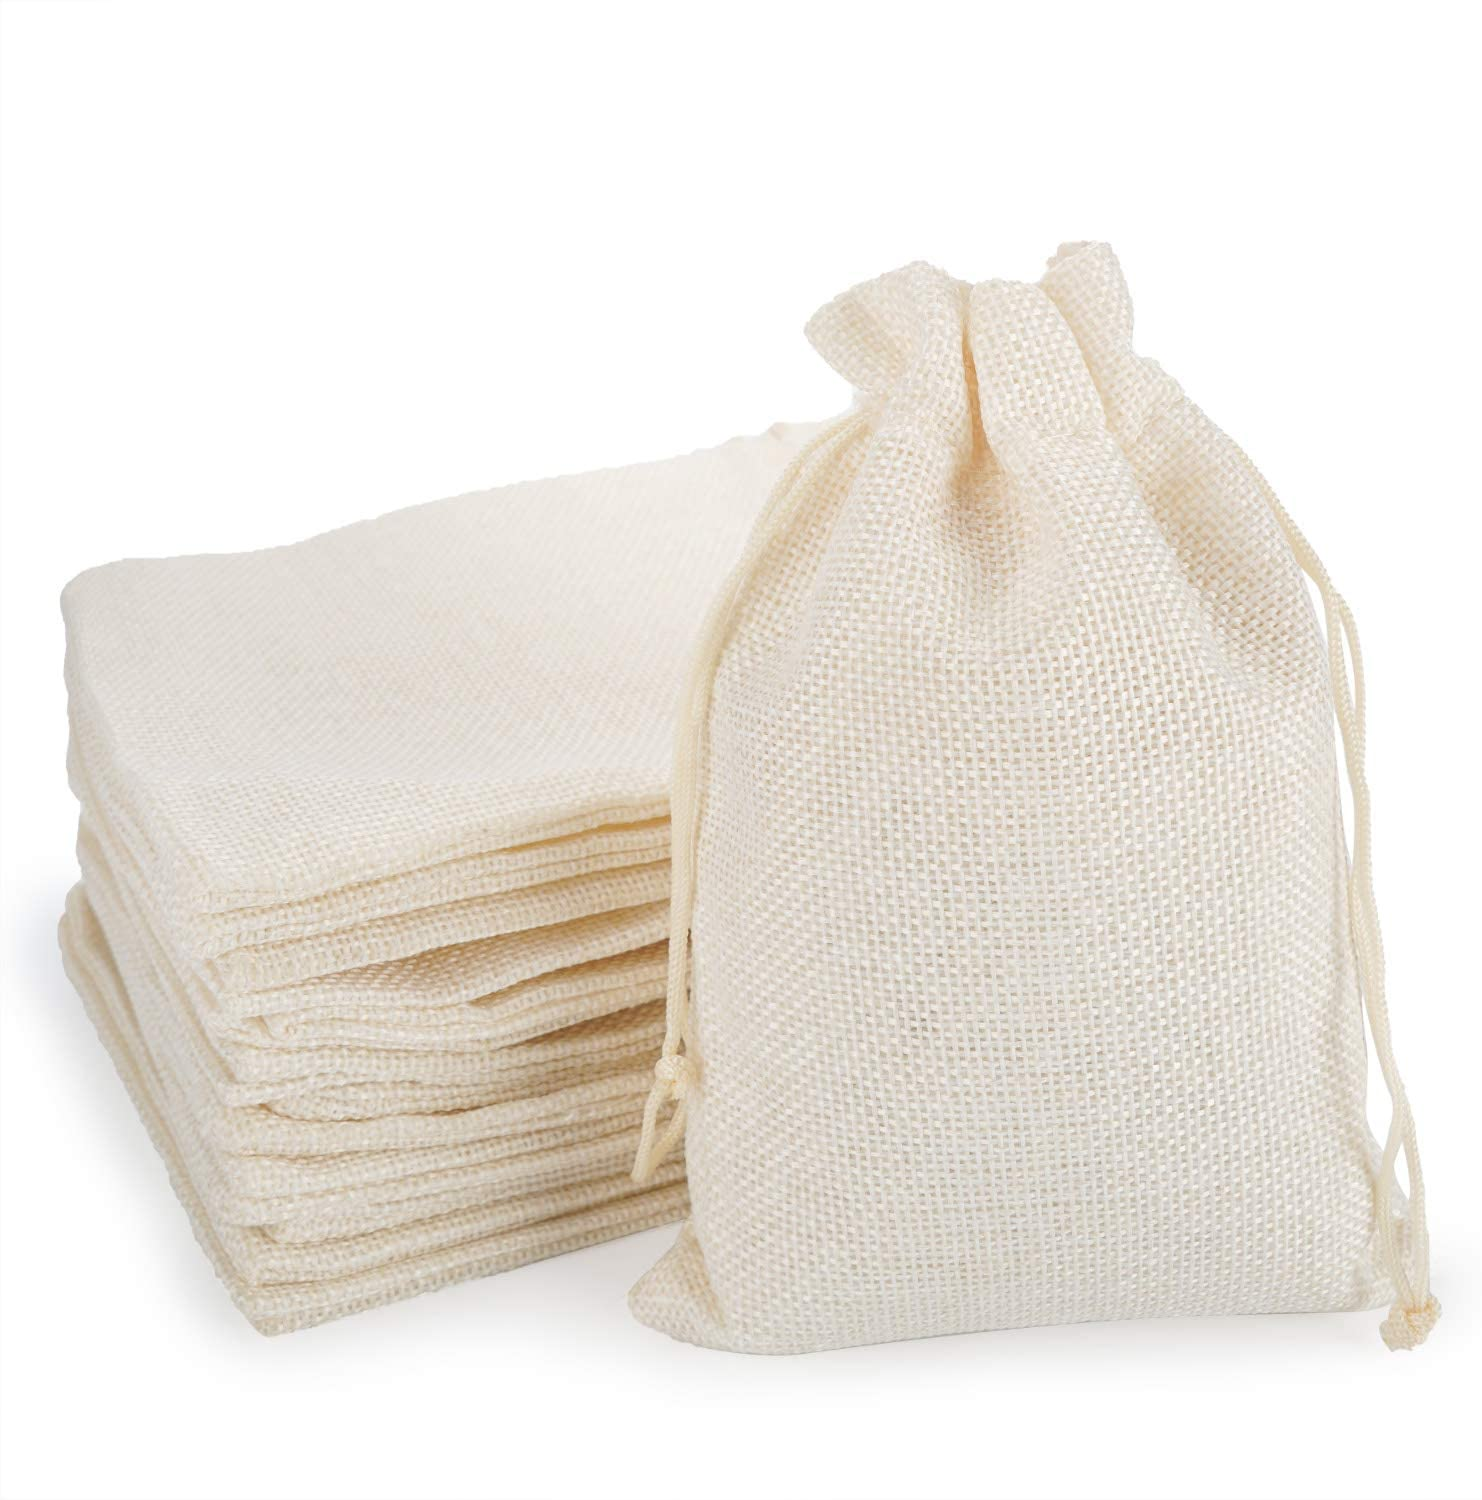 Burlap Bags with Drawstring, EUSOAR 5 x 7 inch Gift Bags 50 pcs, Linen Pouches with Drawstring, Handmade Shopping Store Package Present Bags, Birthday Welcome Wedding Party Pouches-Creamy White